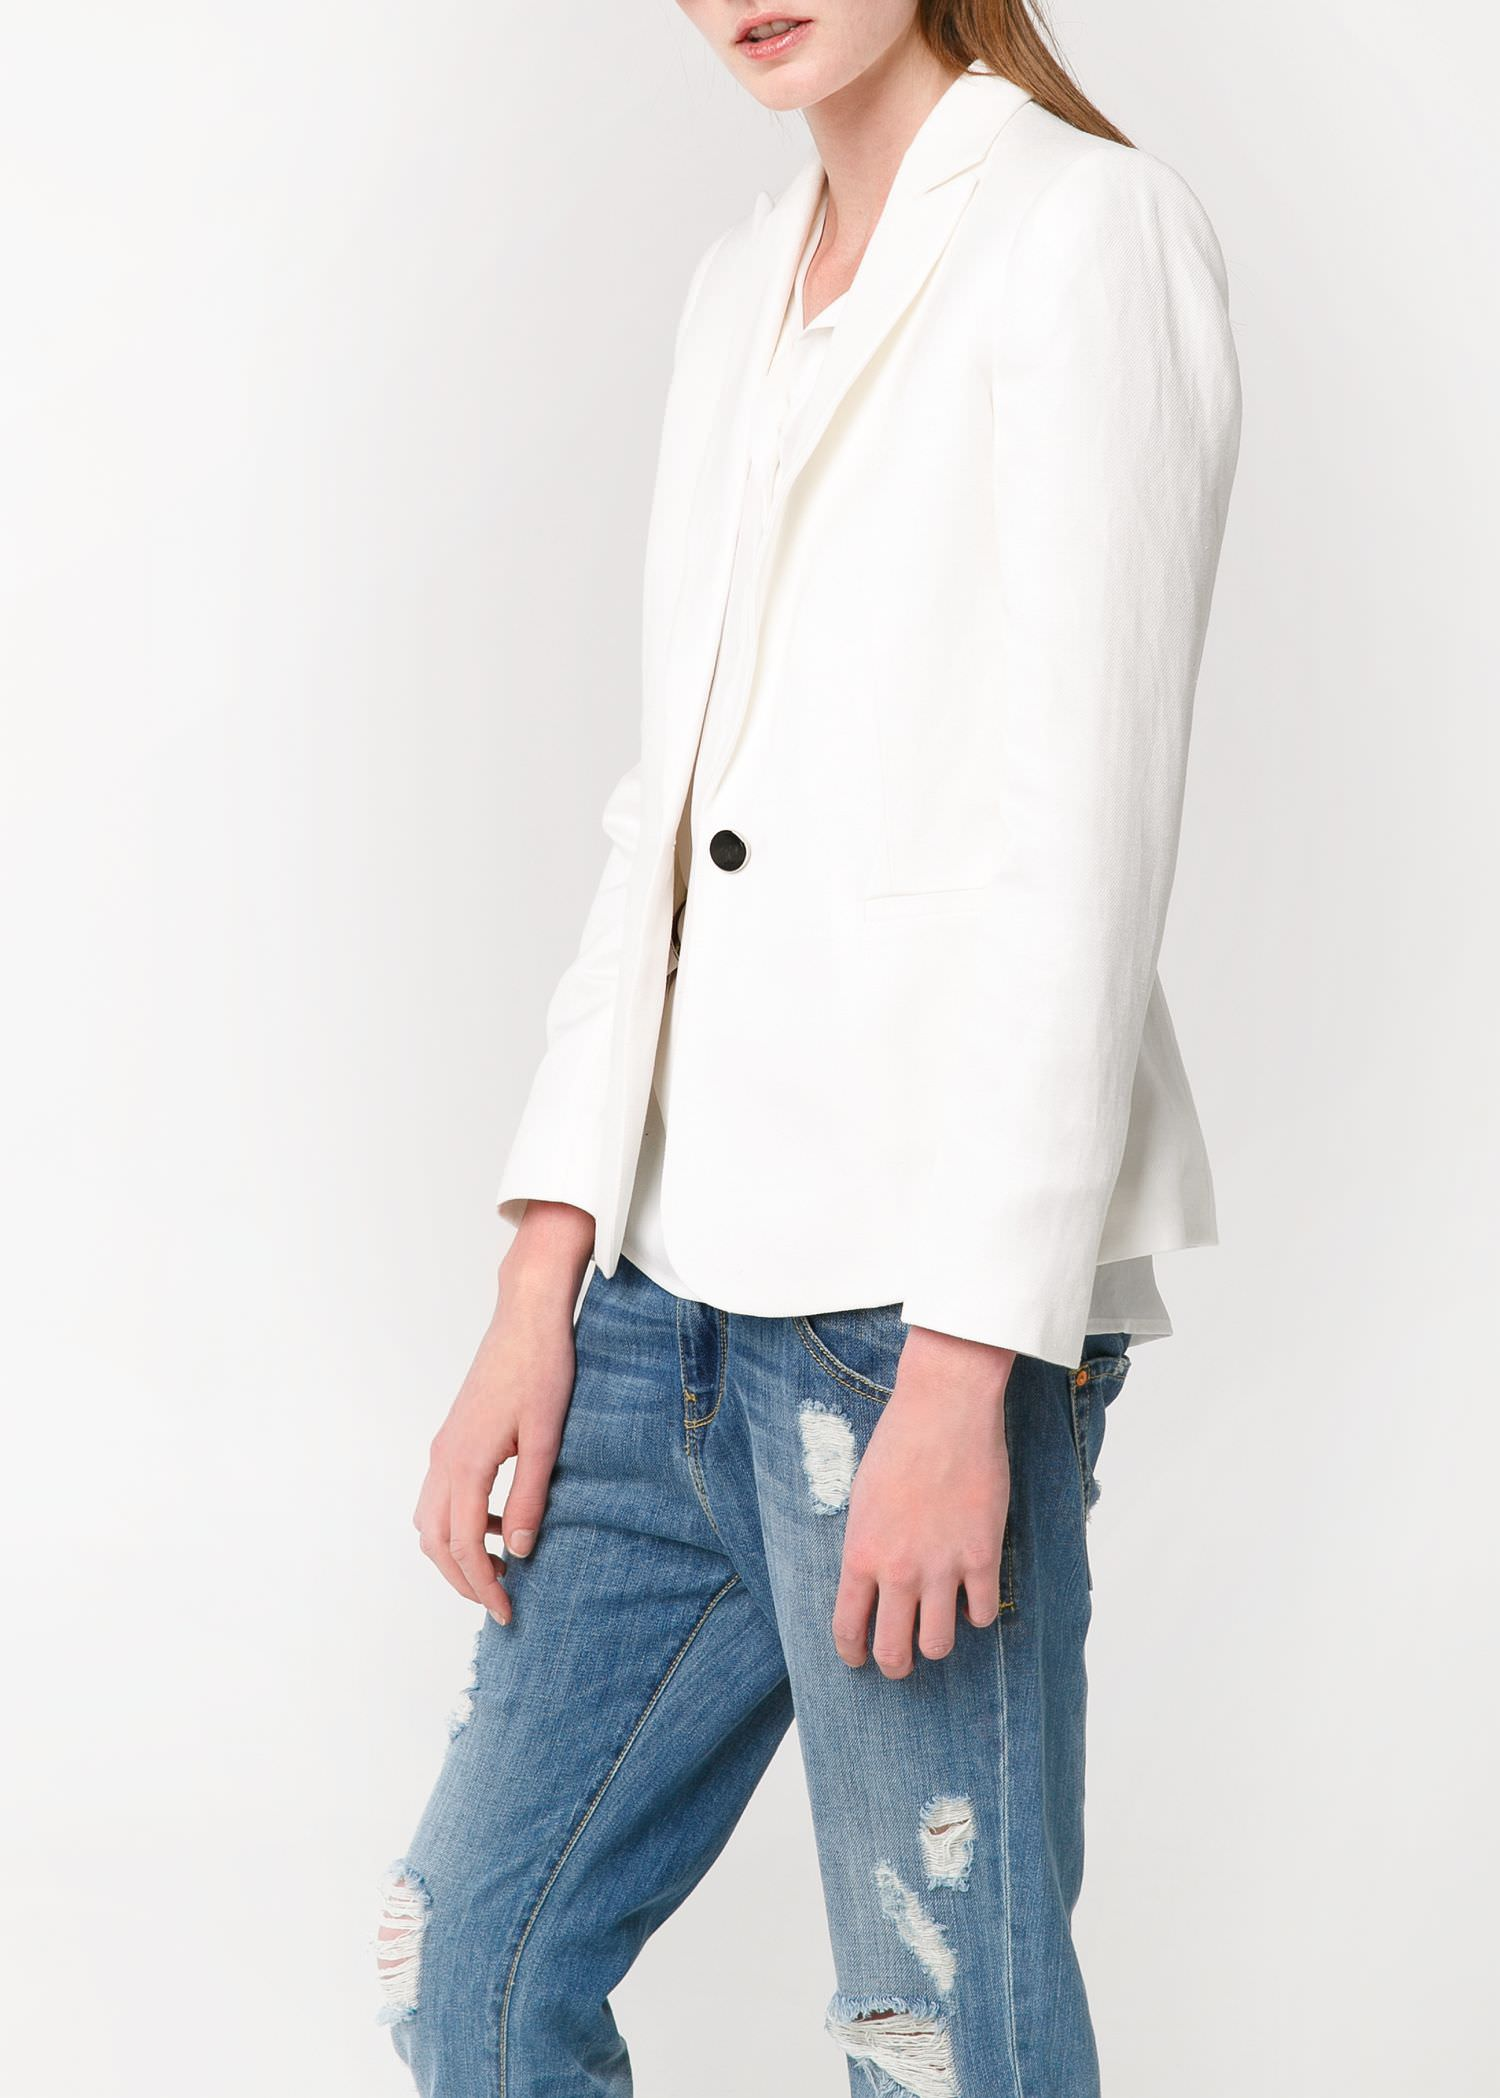 Linen-blend blazer - Jackets for Women | MANGO